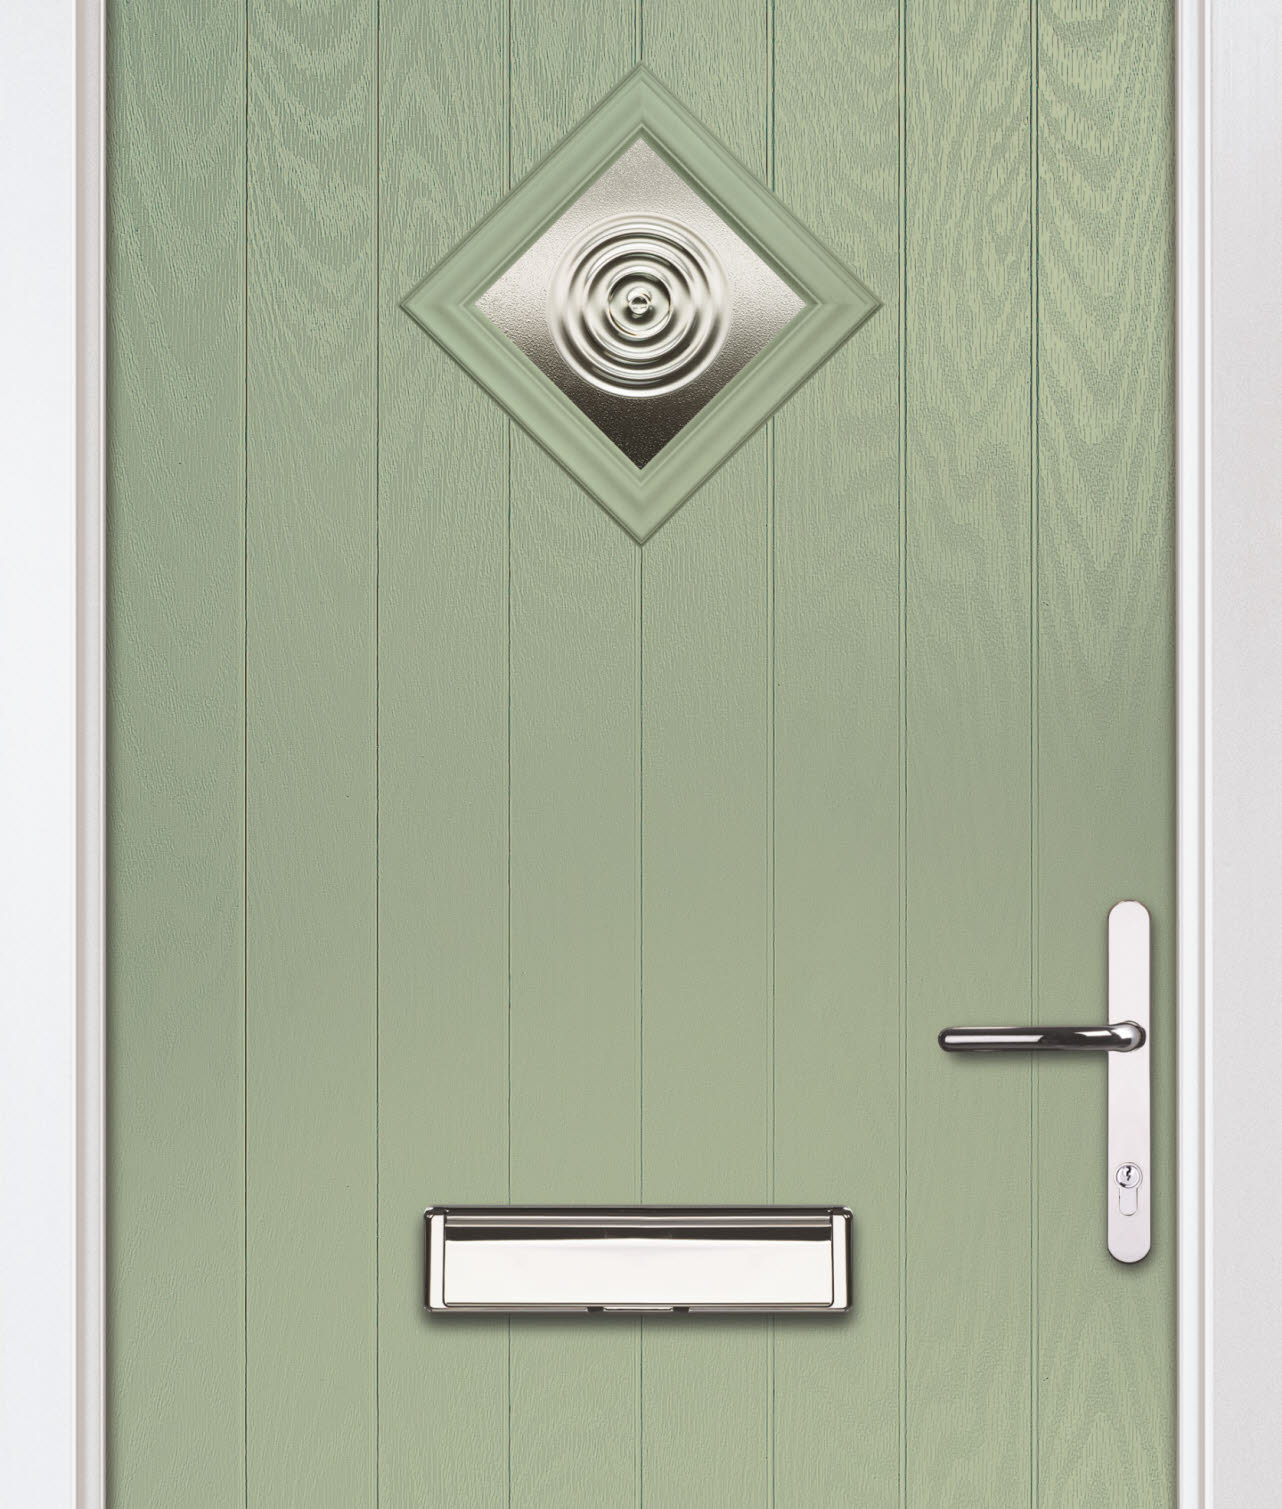 Green external door, exterior shot